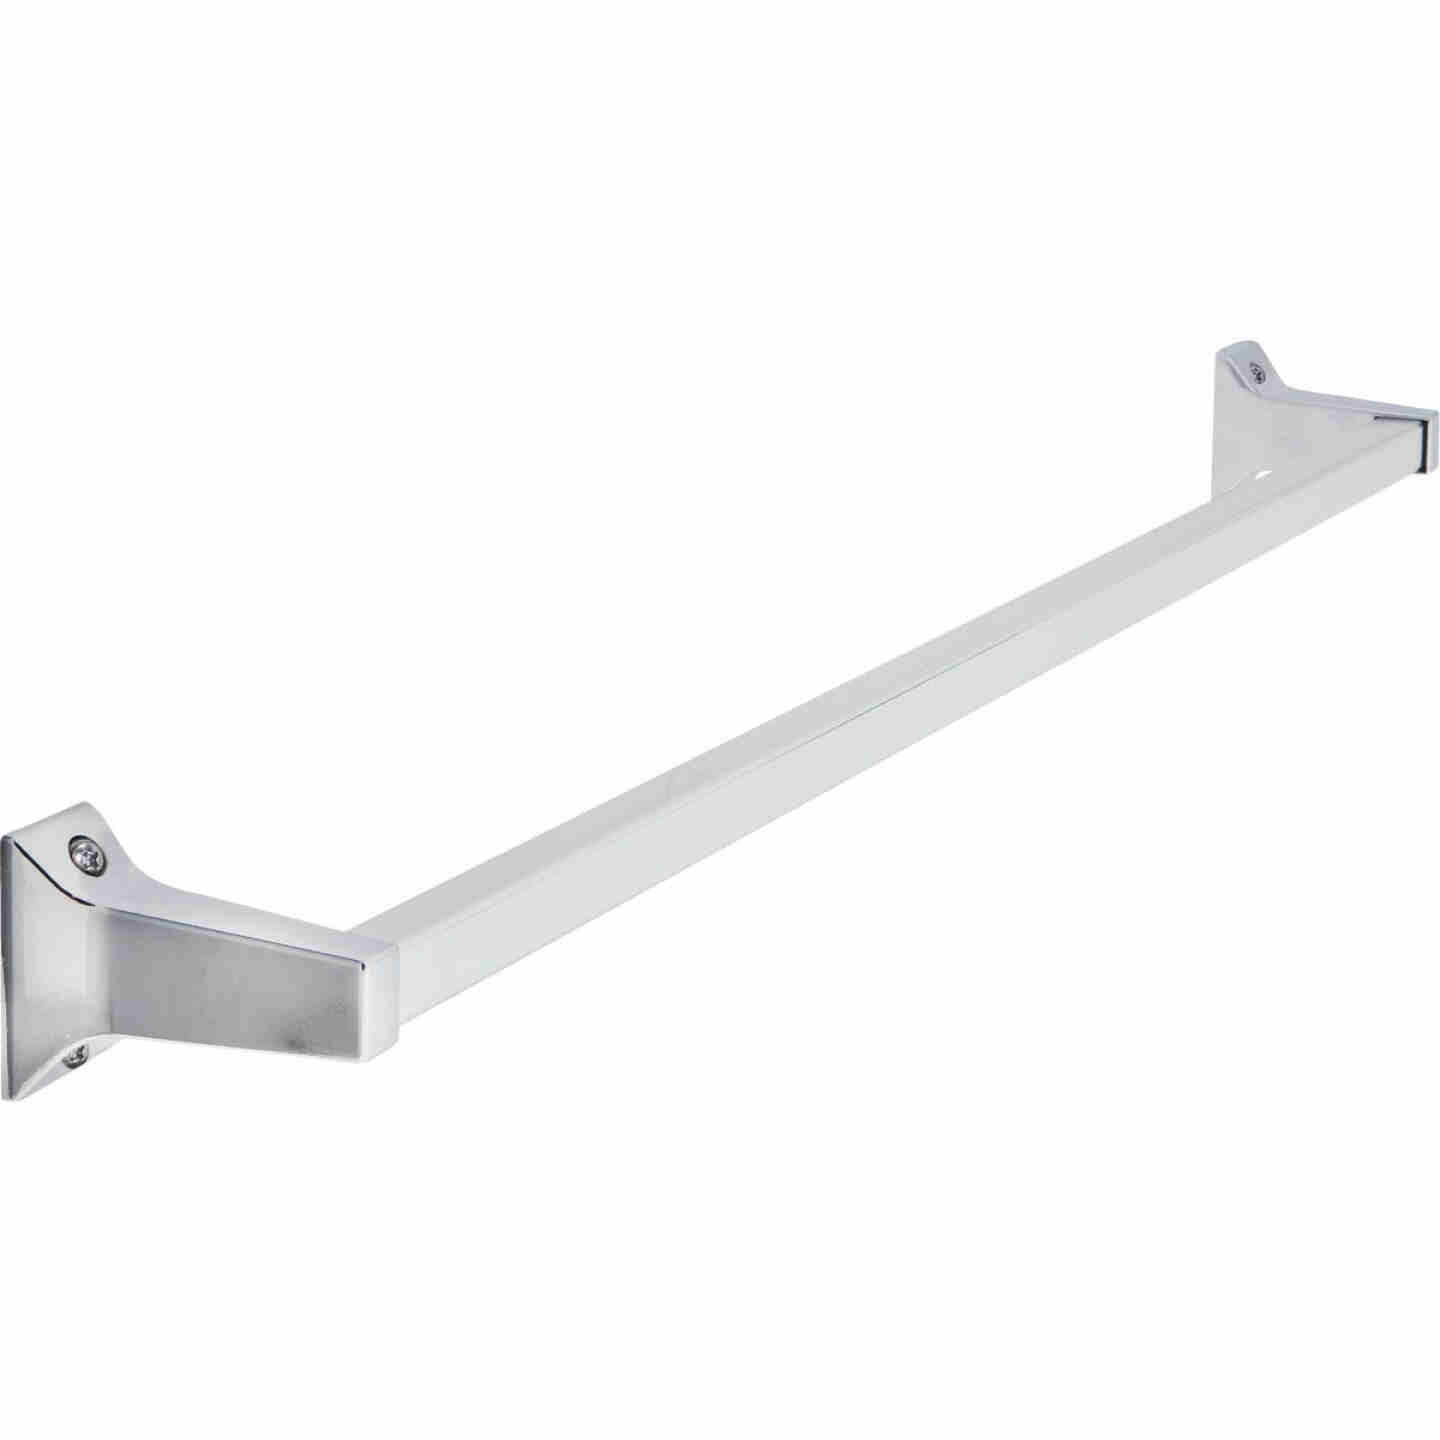 Home Impressions Alpha 24 In. Chrome Towel Bar Image 1